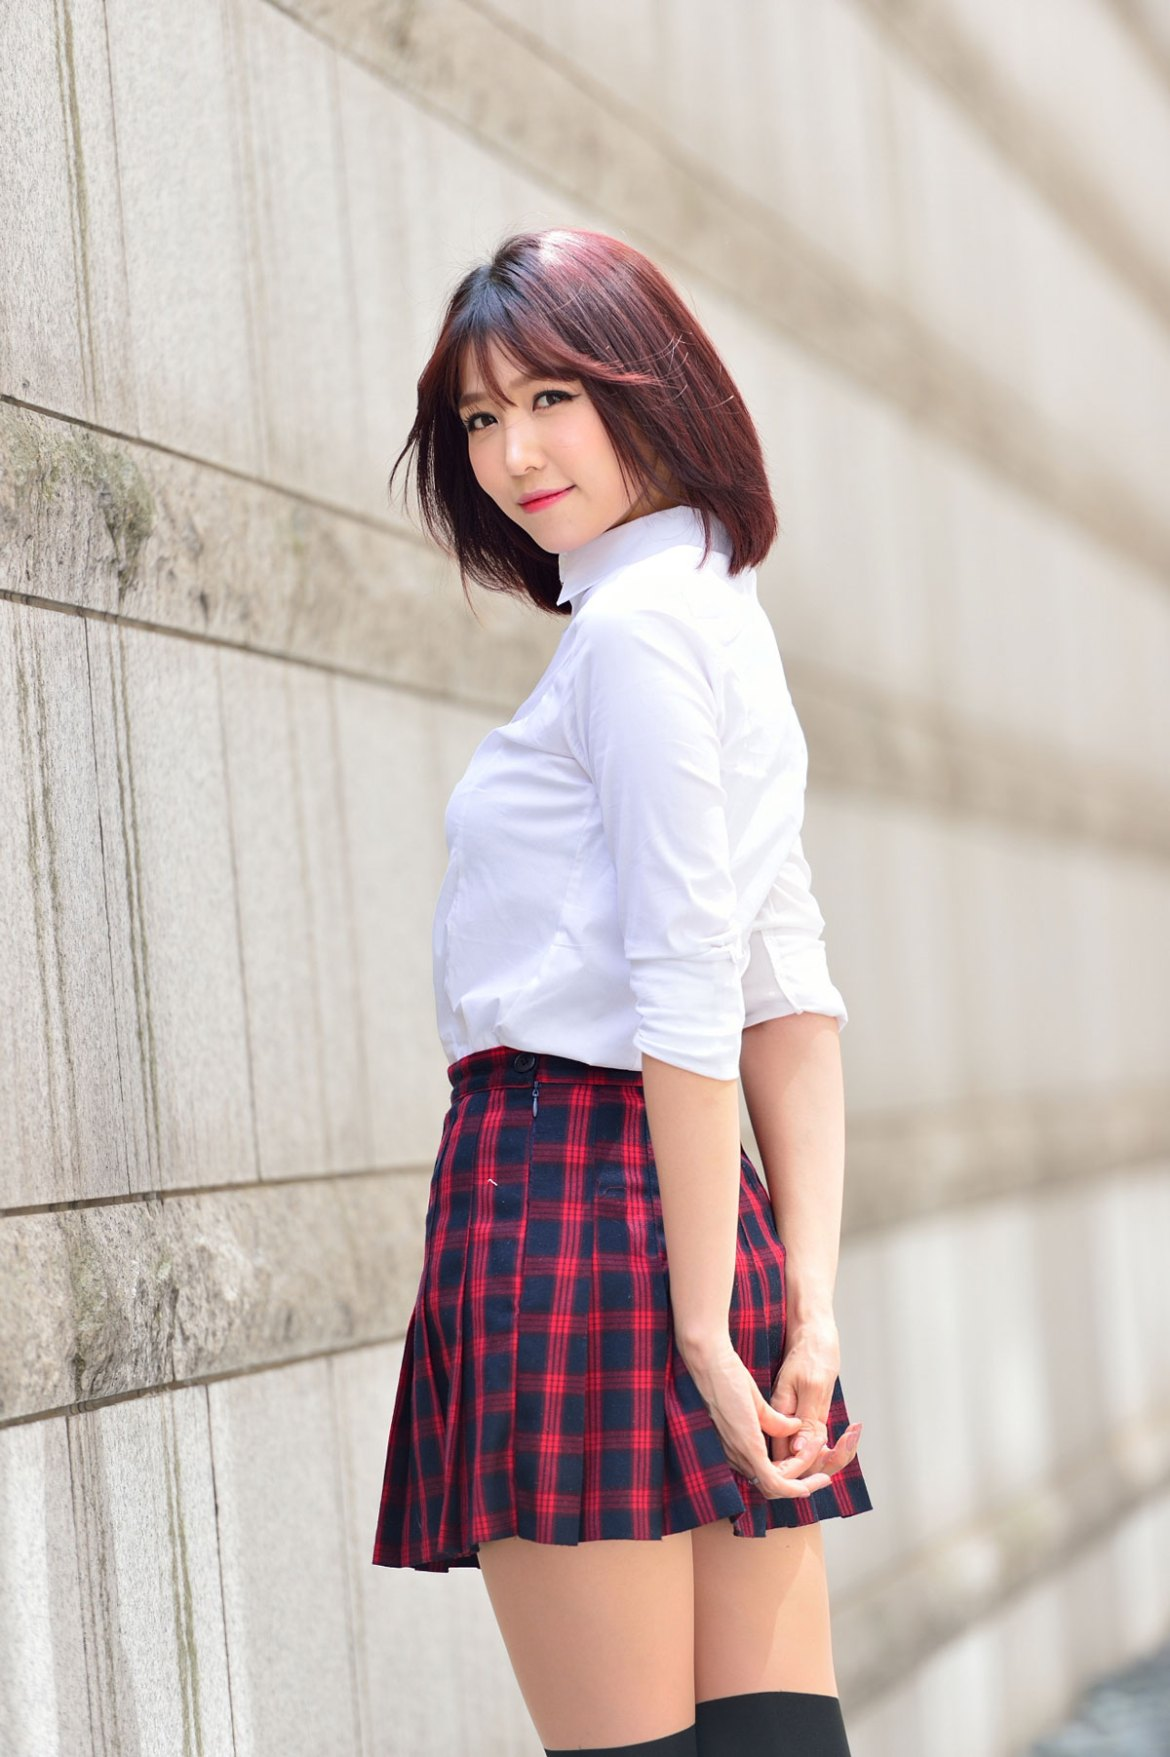 Korean model Lee Eun Hye school fashion